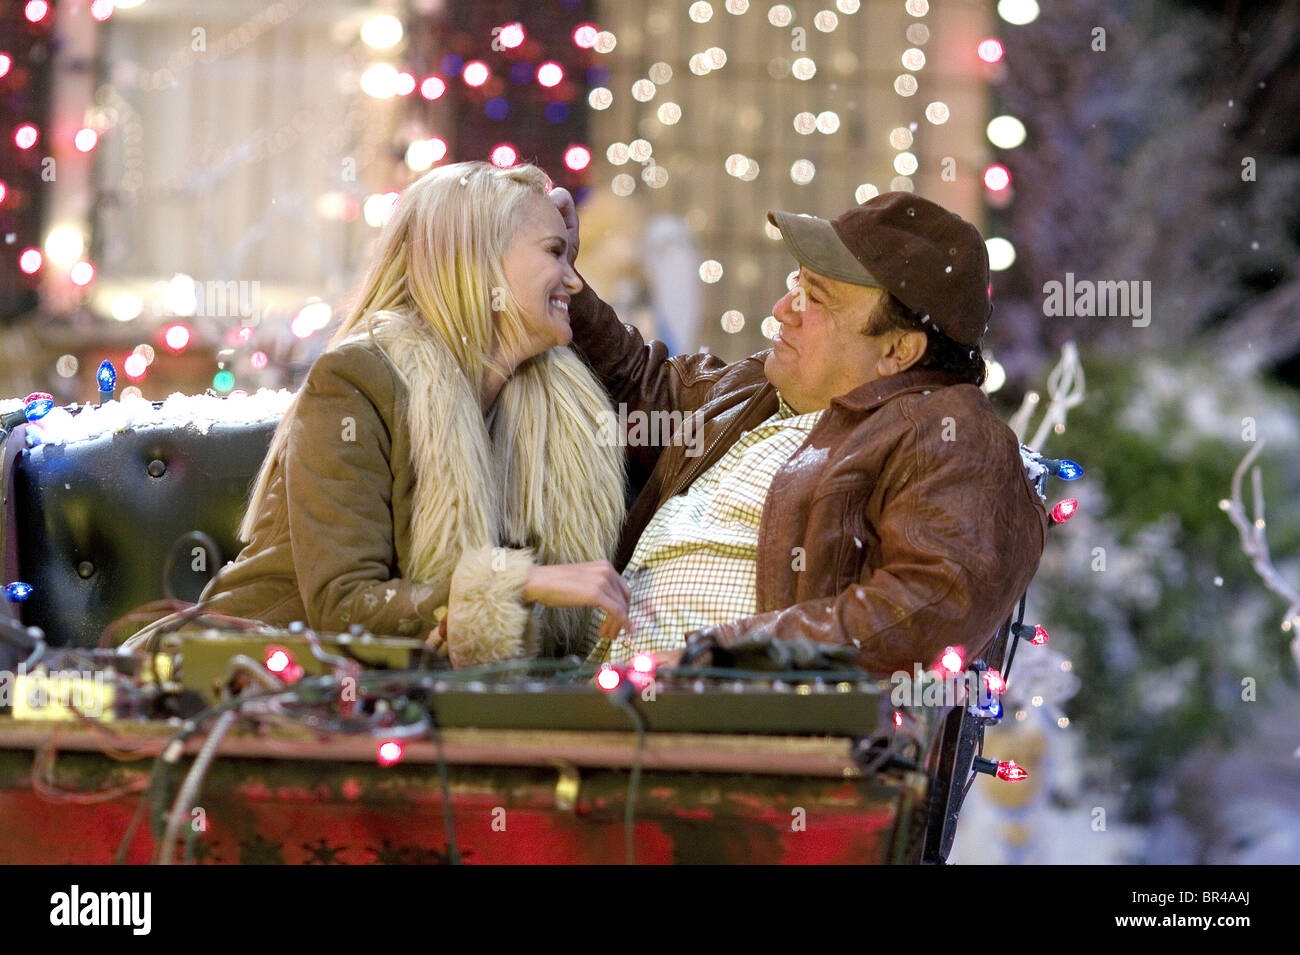 KRISTIN CHENOWETH & DANNY DEVITO DECK THE HALLS (2006 Stock Photo ...